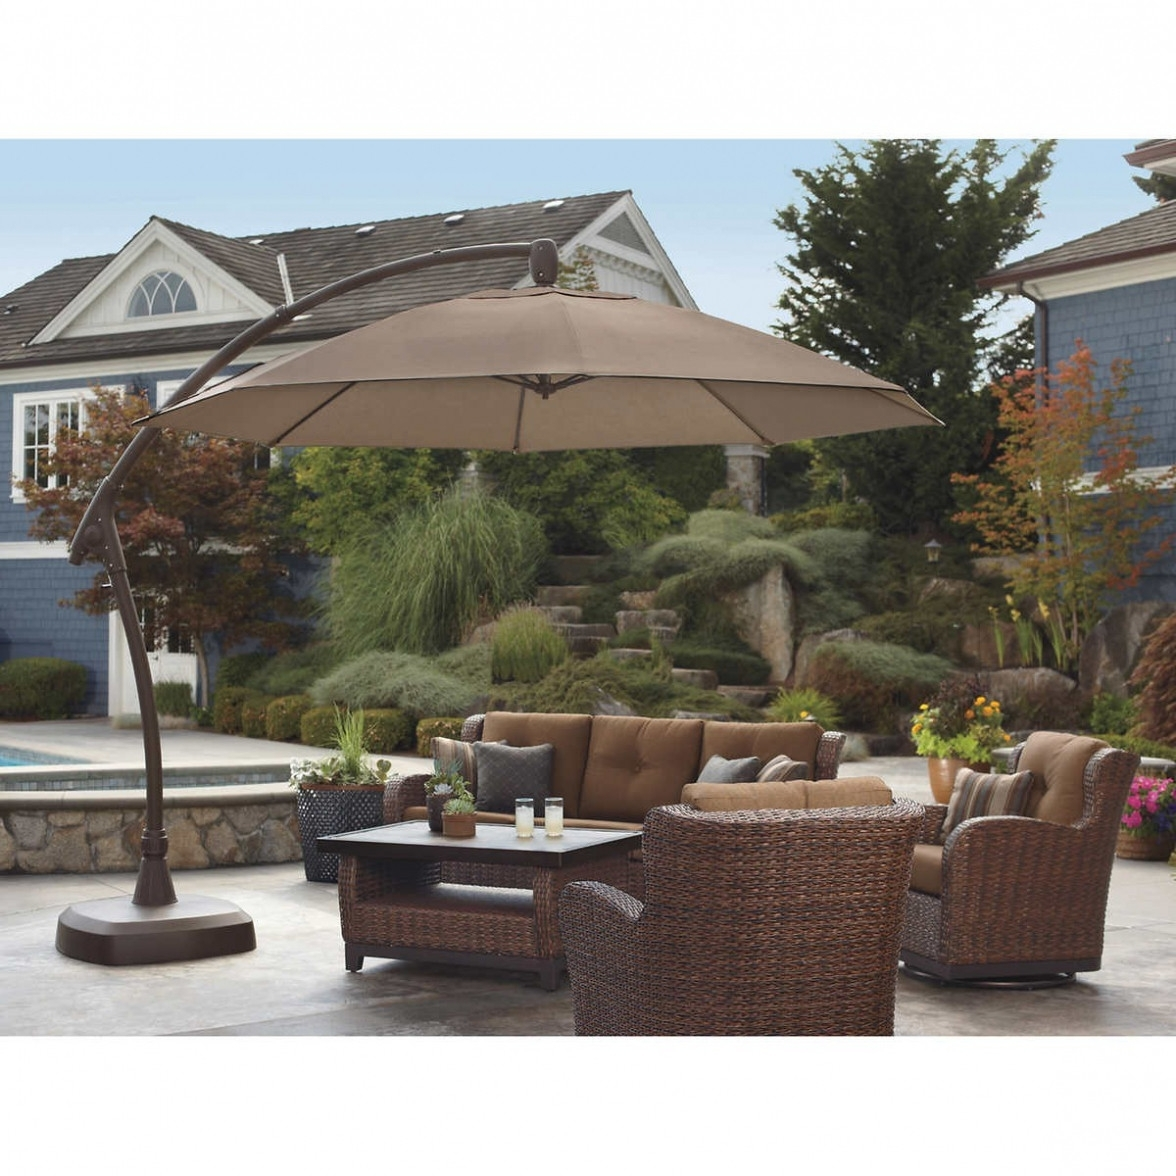 Costco Patio Umbrellas For Current Costco Patio Umbrella – Home Design Ideas (View 3 of 20)